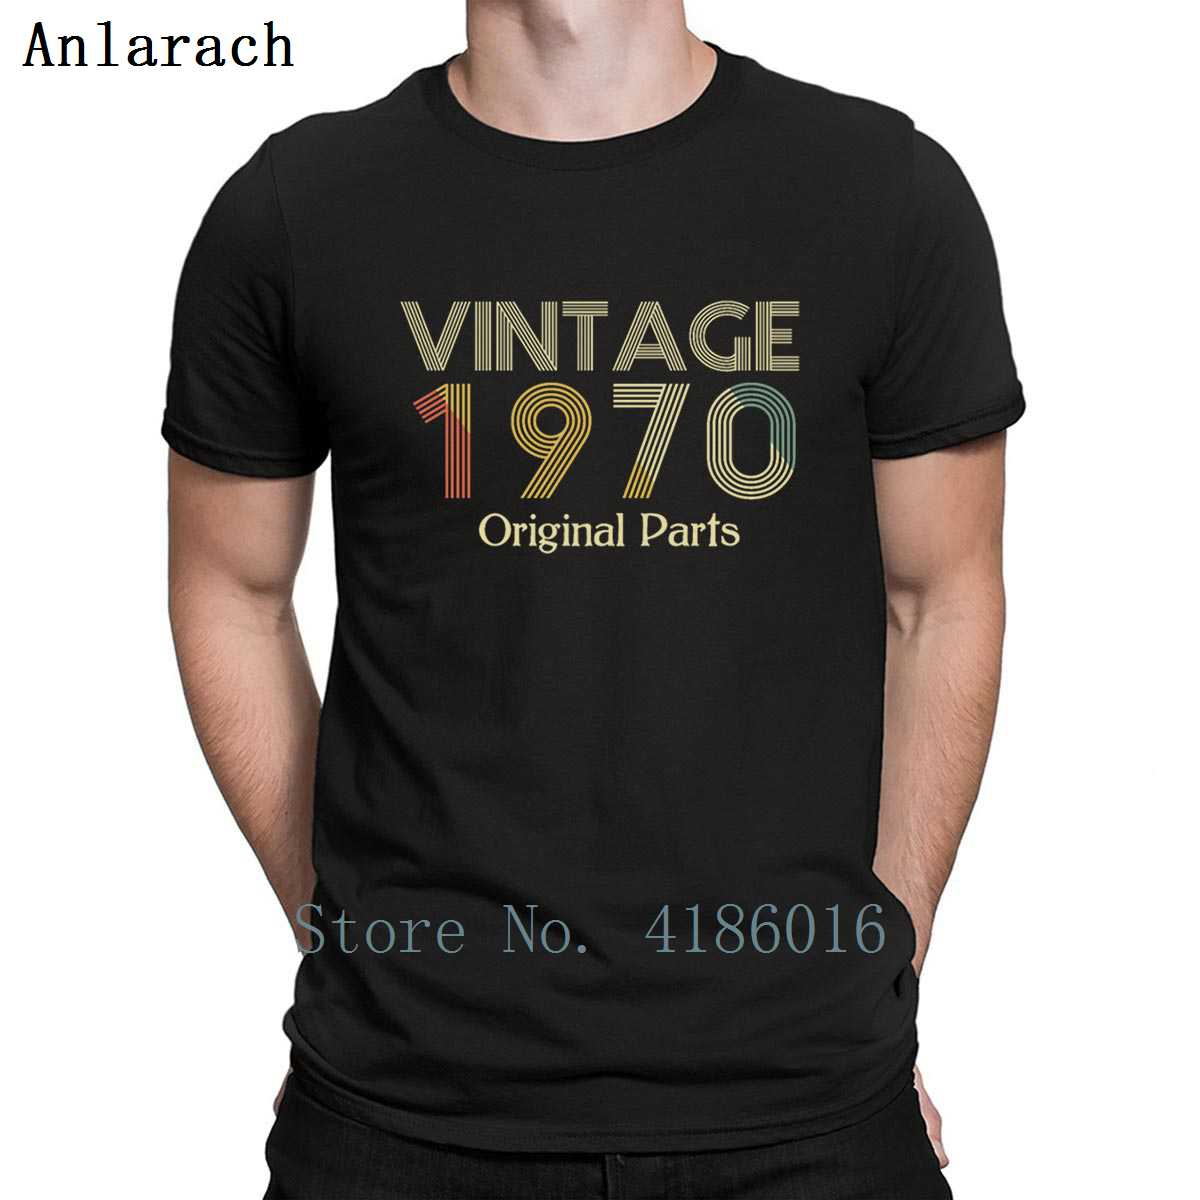 <font><b>Vintage</b></font> <font><b>1970</b></font> Original Parts Birthday Italic T Shirt Customized Letter Kawaii Summer Style Euro Size S-5xl Cotton Casual Shirt image